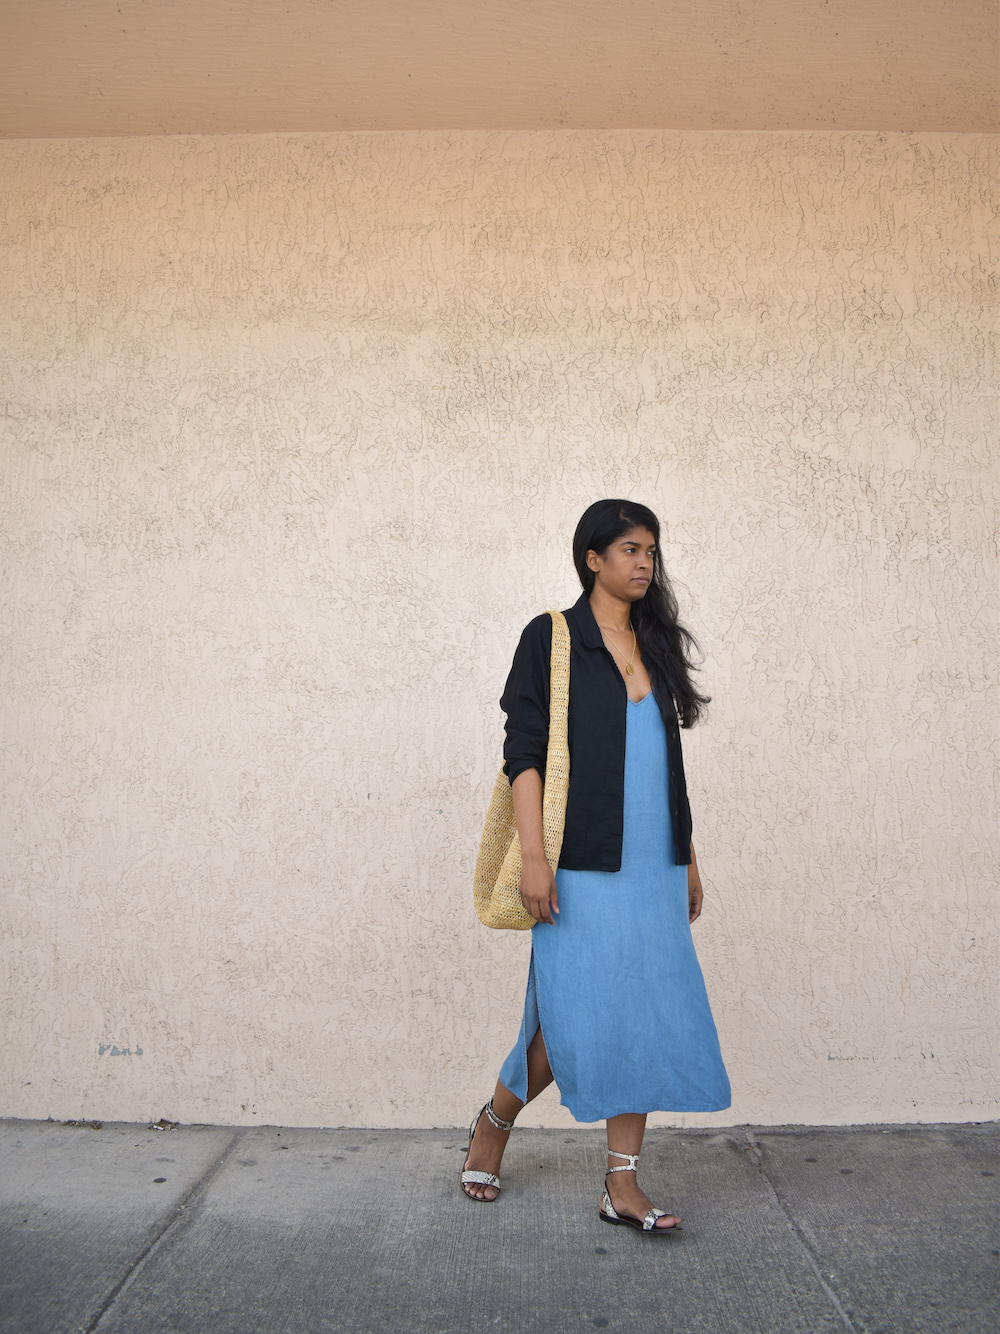 Loose Fit Dress // Week Of Outfits With Élan Byrd On The Good Trade